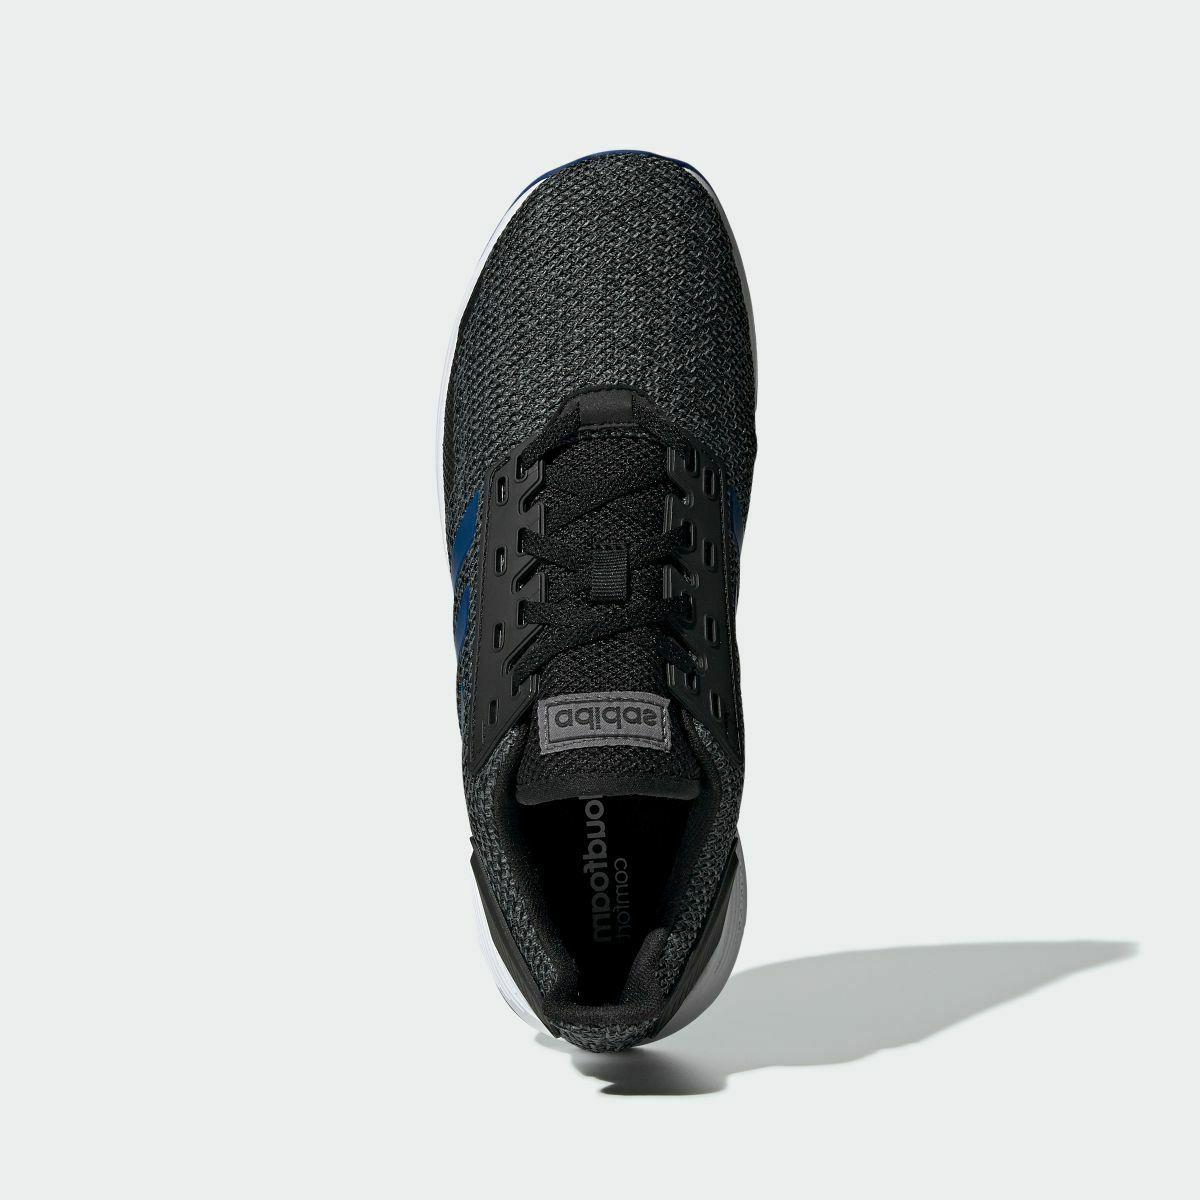 Adidas WIDE Running Shoes Multi Sizes